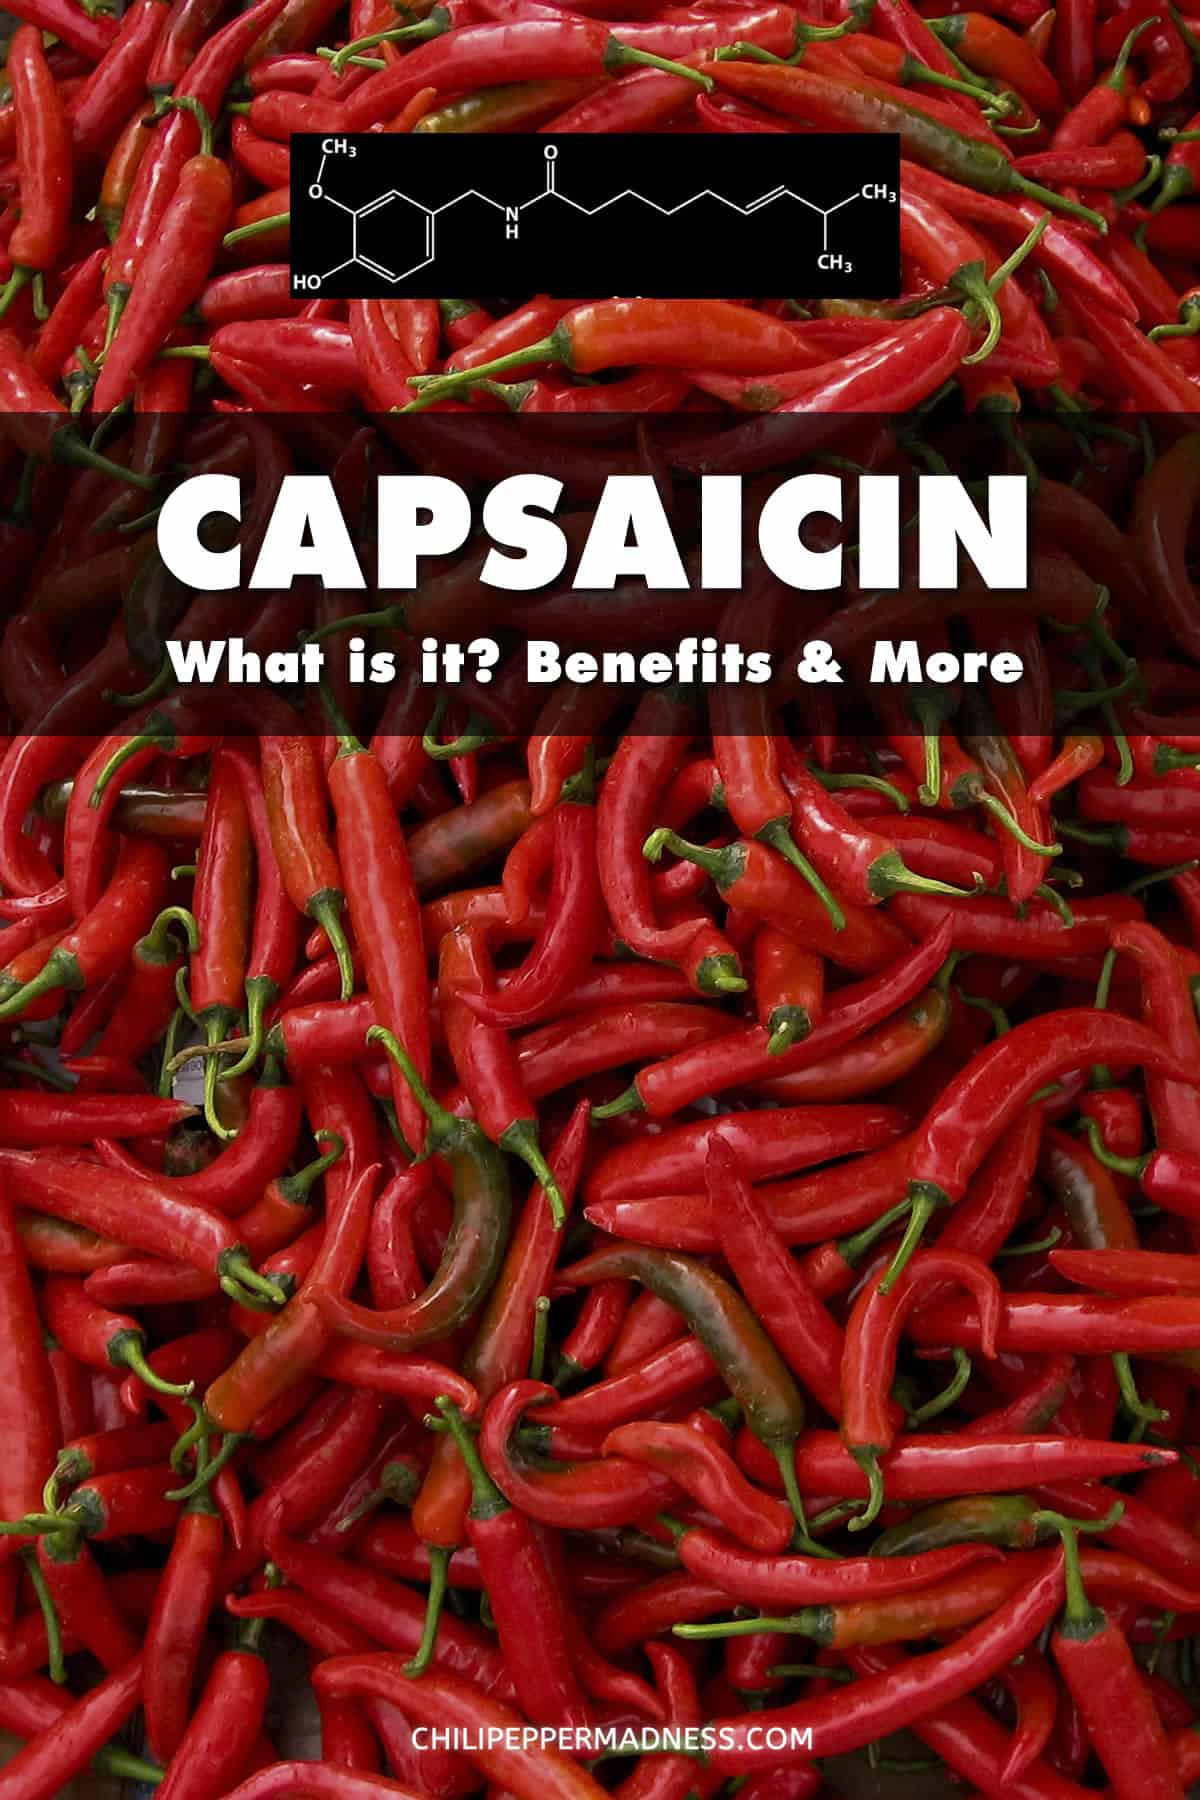 What is Capsaicin? Heat Level, Health Benefits and More - Capsaicin is a chemical component of chili peppers that give them their spicy heat. Though widely popular for spicy food lovers, it also offers certain health benefits and pain relief. Learn more about capsaicin below.